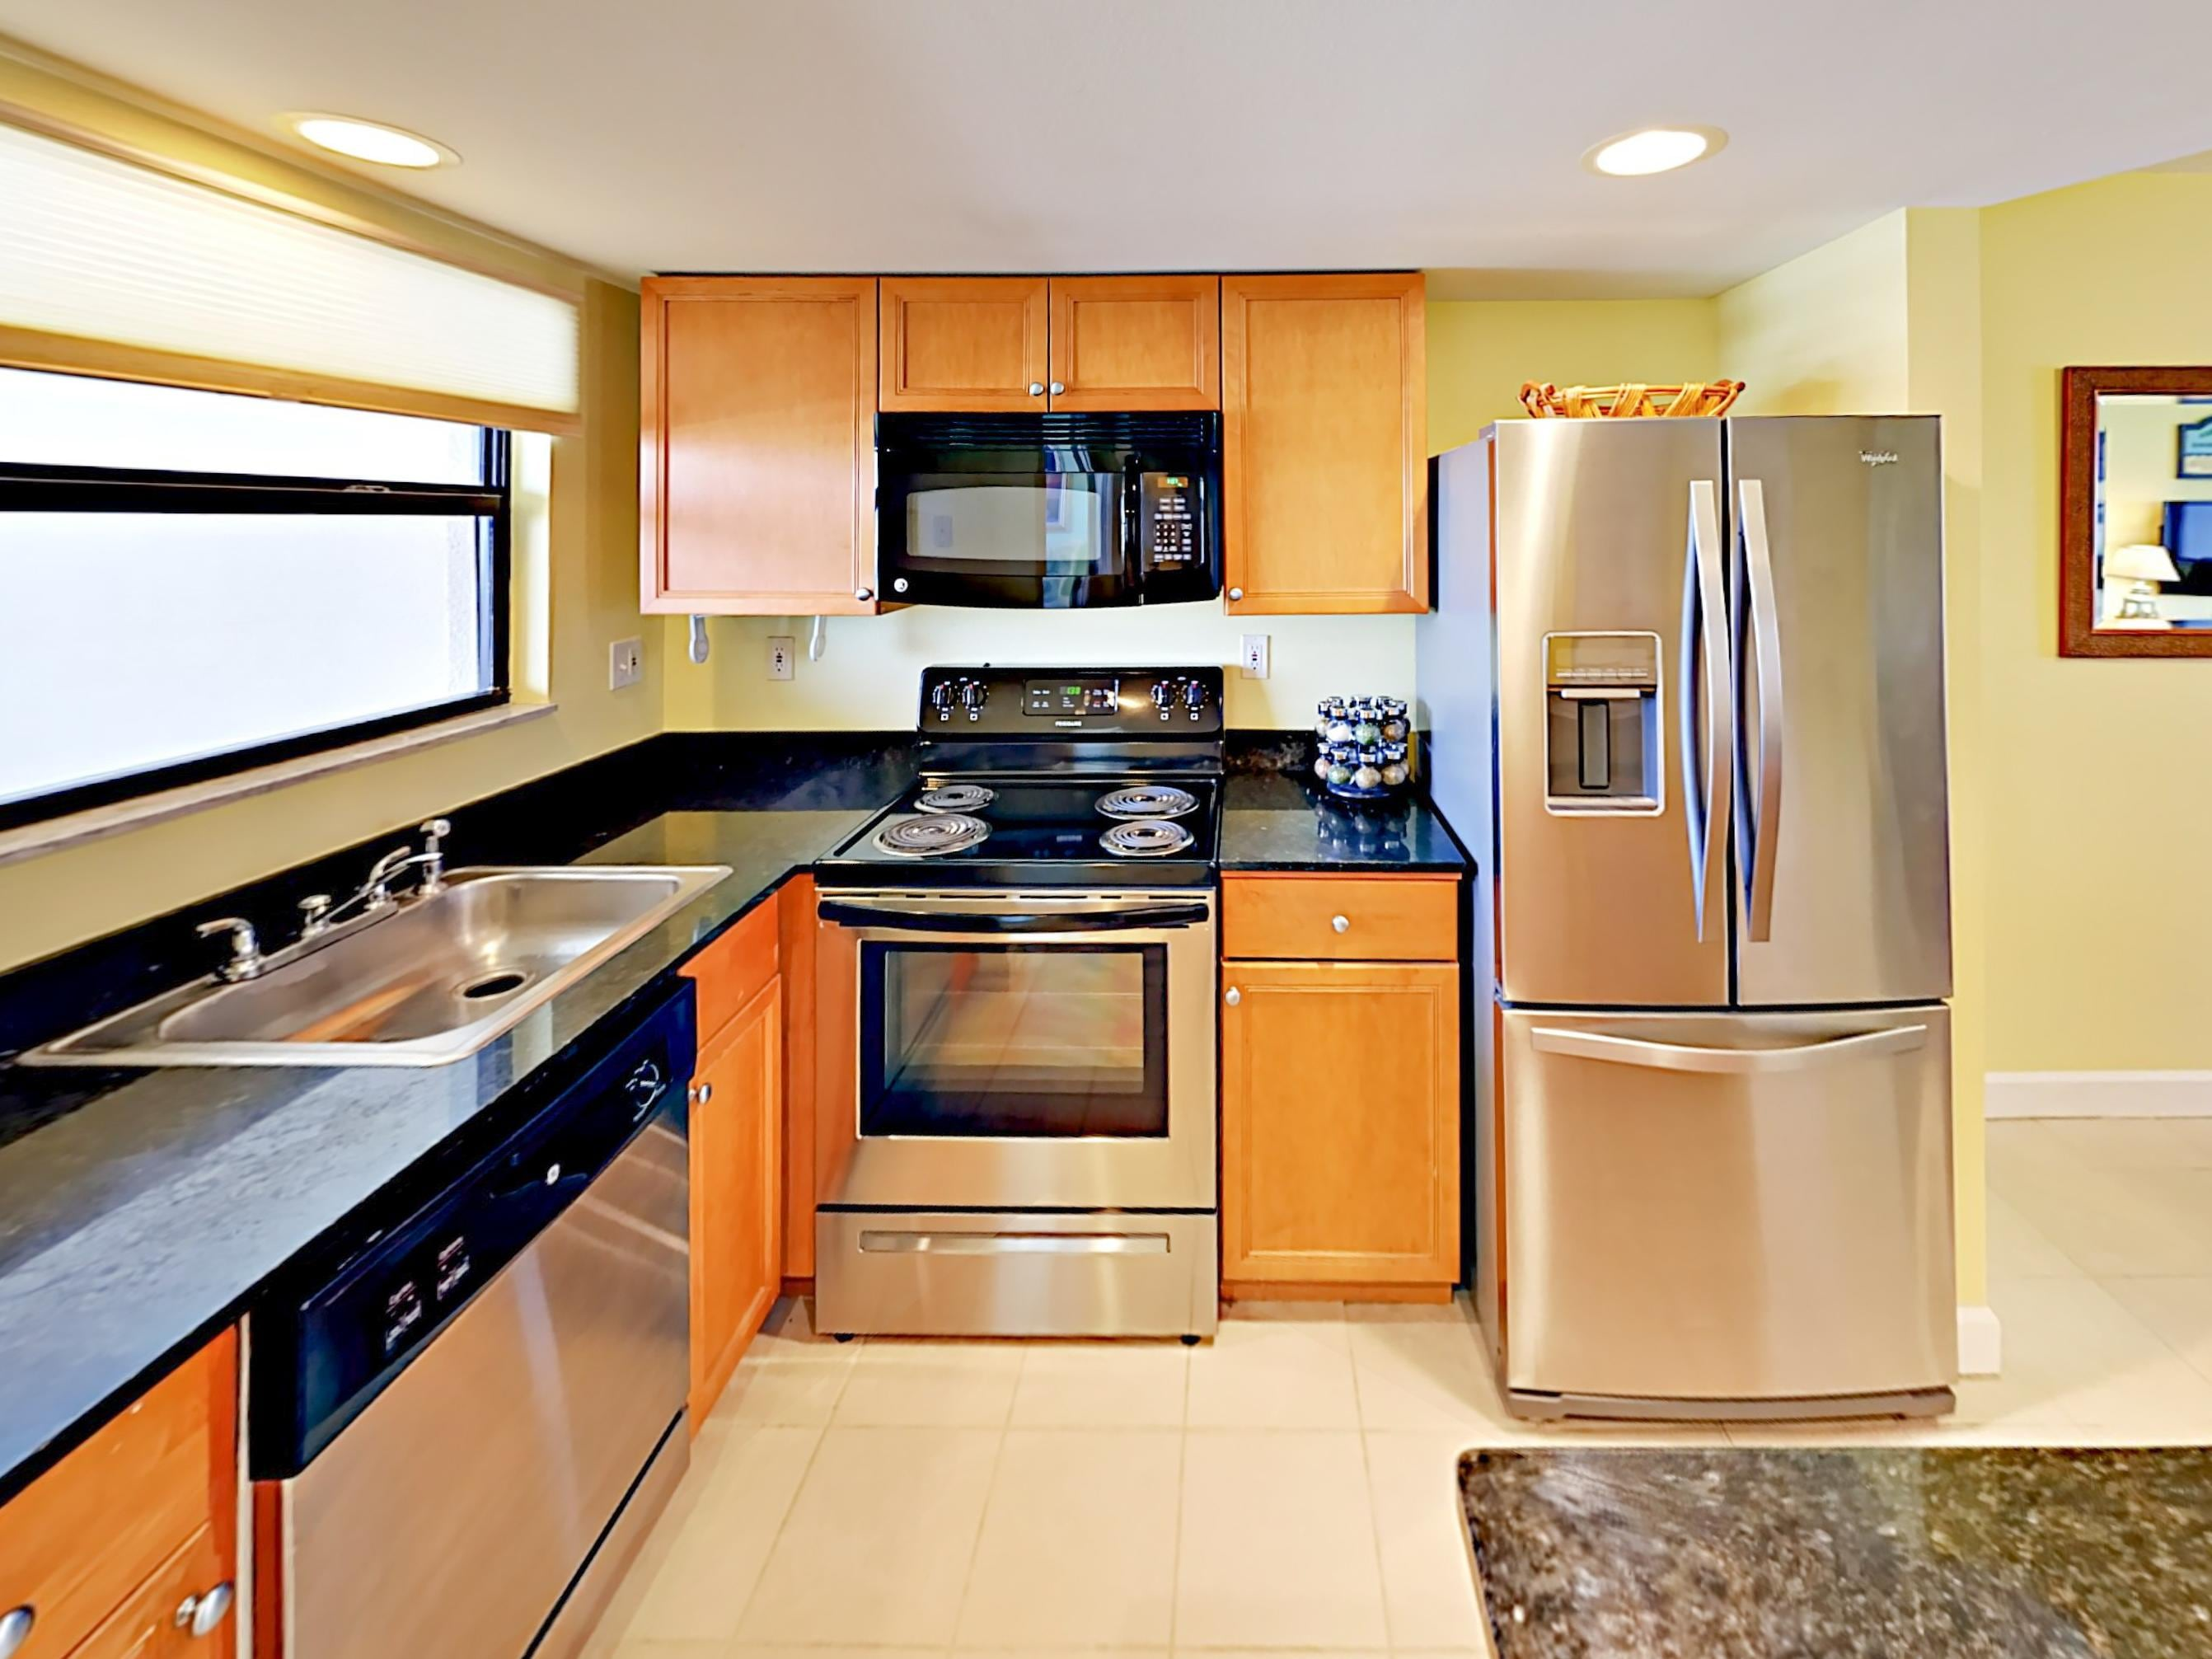 Granite countertops, stainless steel appliances, and rich wood cabinets await in the kitchen. TurnKey stocks a starter supply of dish soap and paper towels.